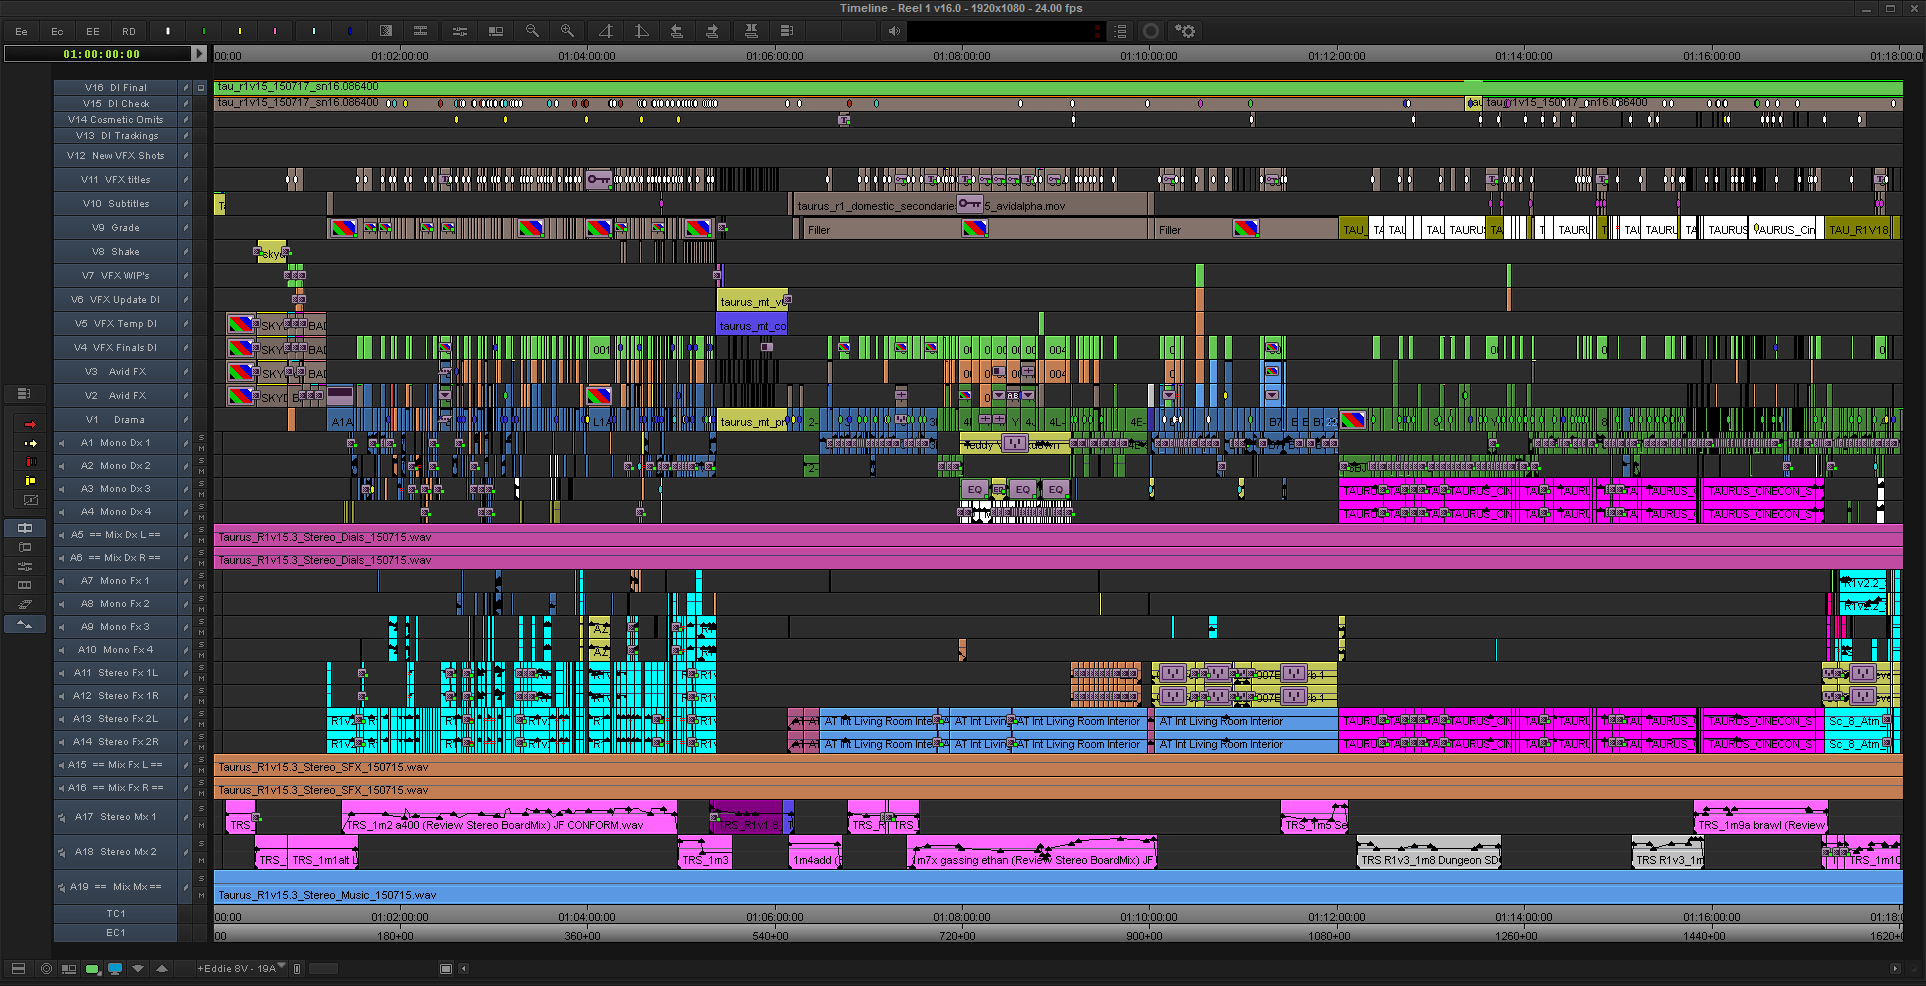 Taurus Final Reel 1 Avid MC Timeline